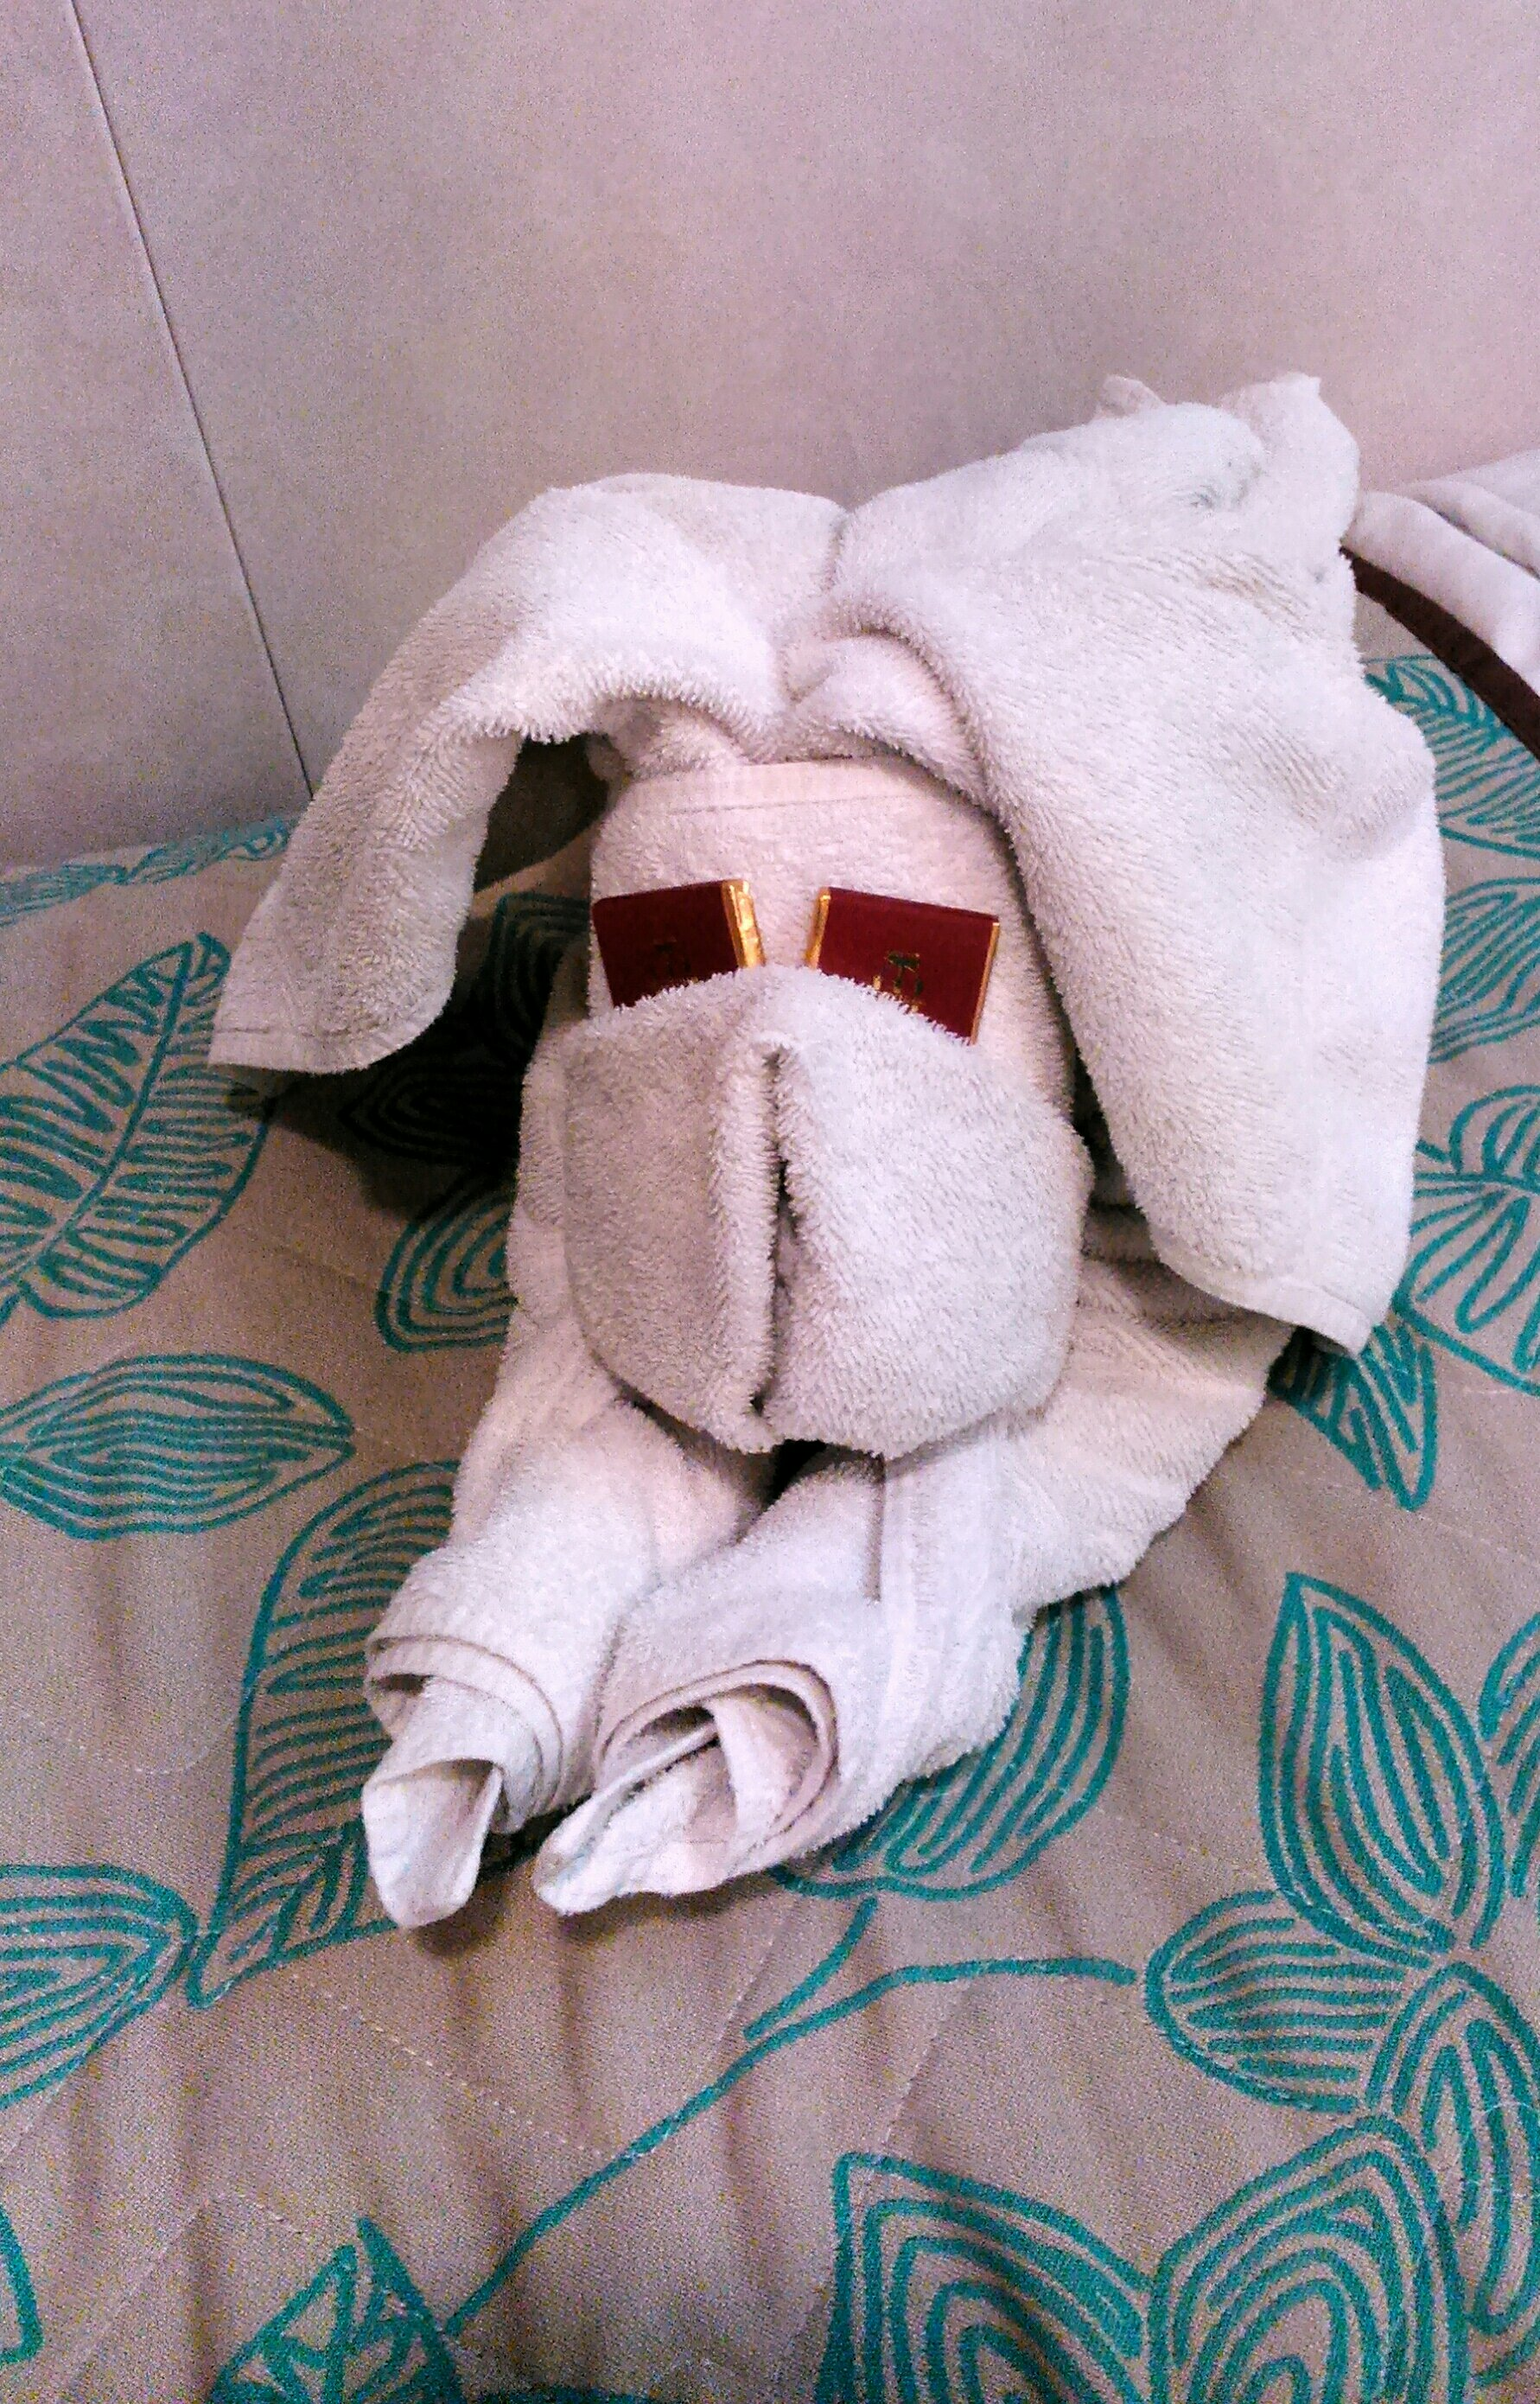 Towel origami of a dog